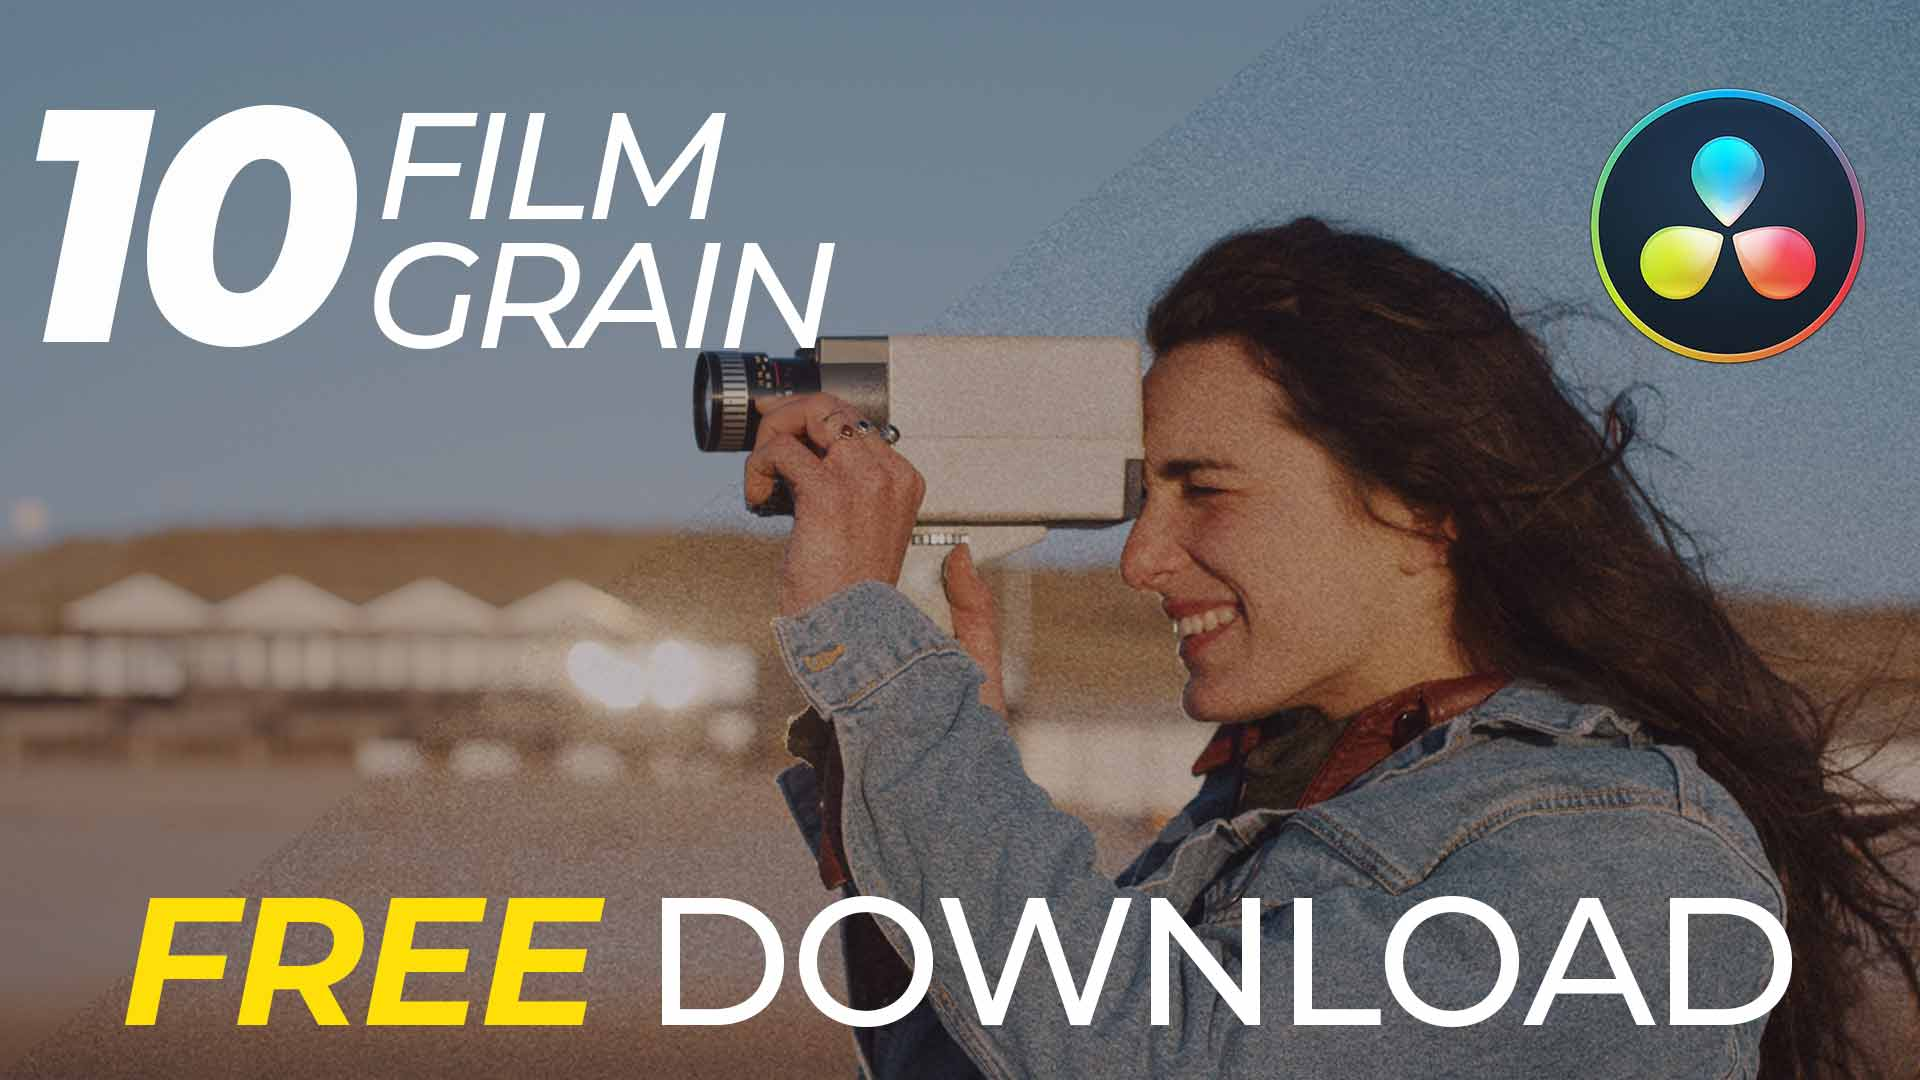 GrainX: 10 Free 4K Film Grain for DaVinci Resolve